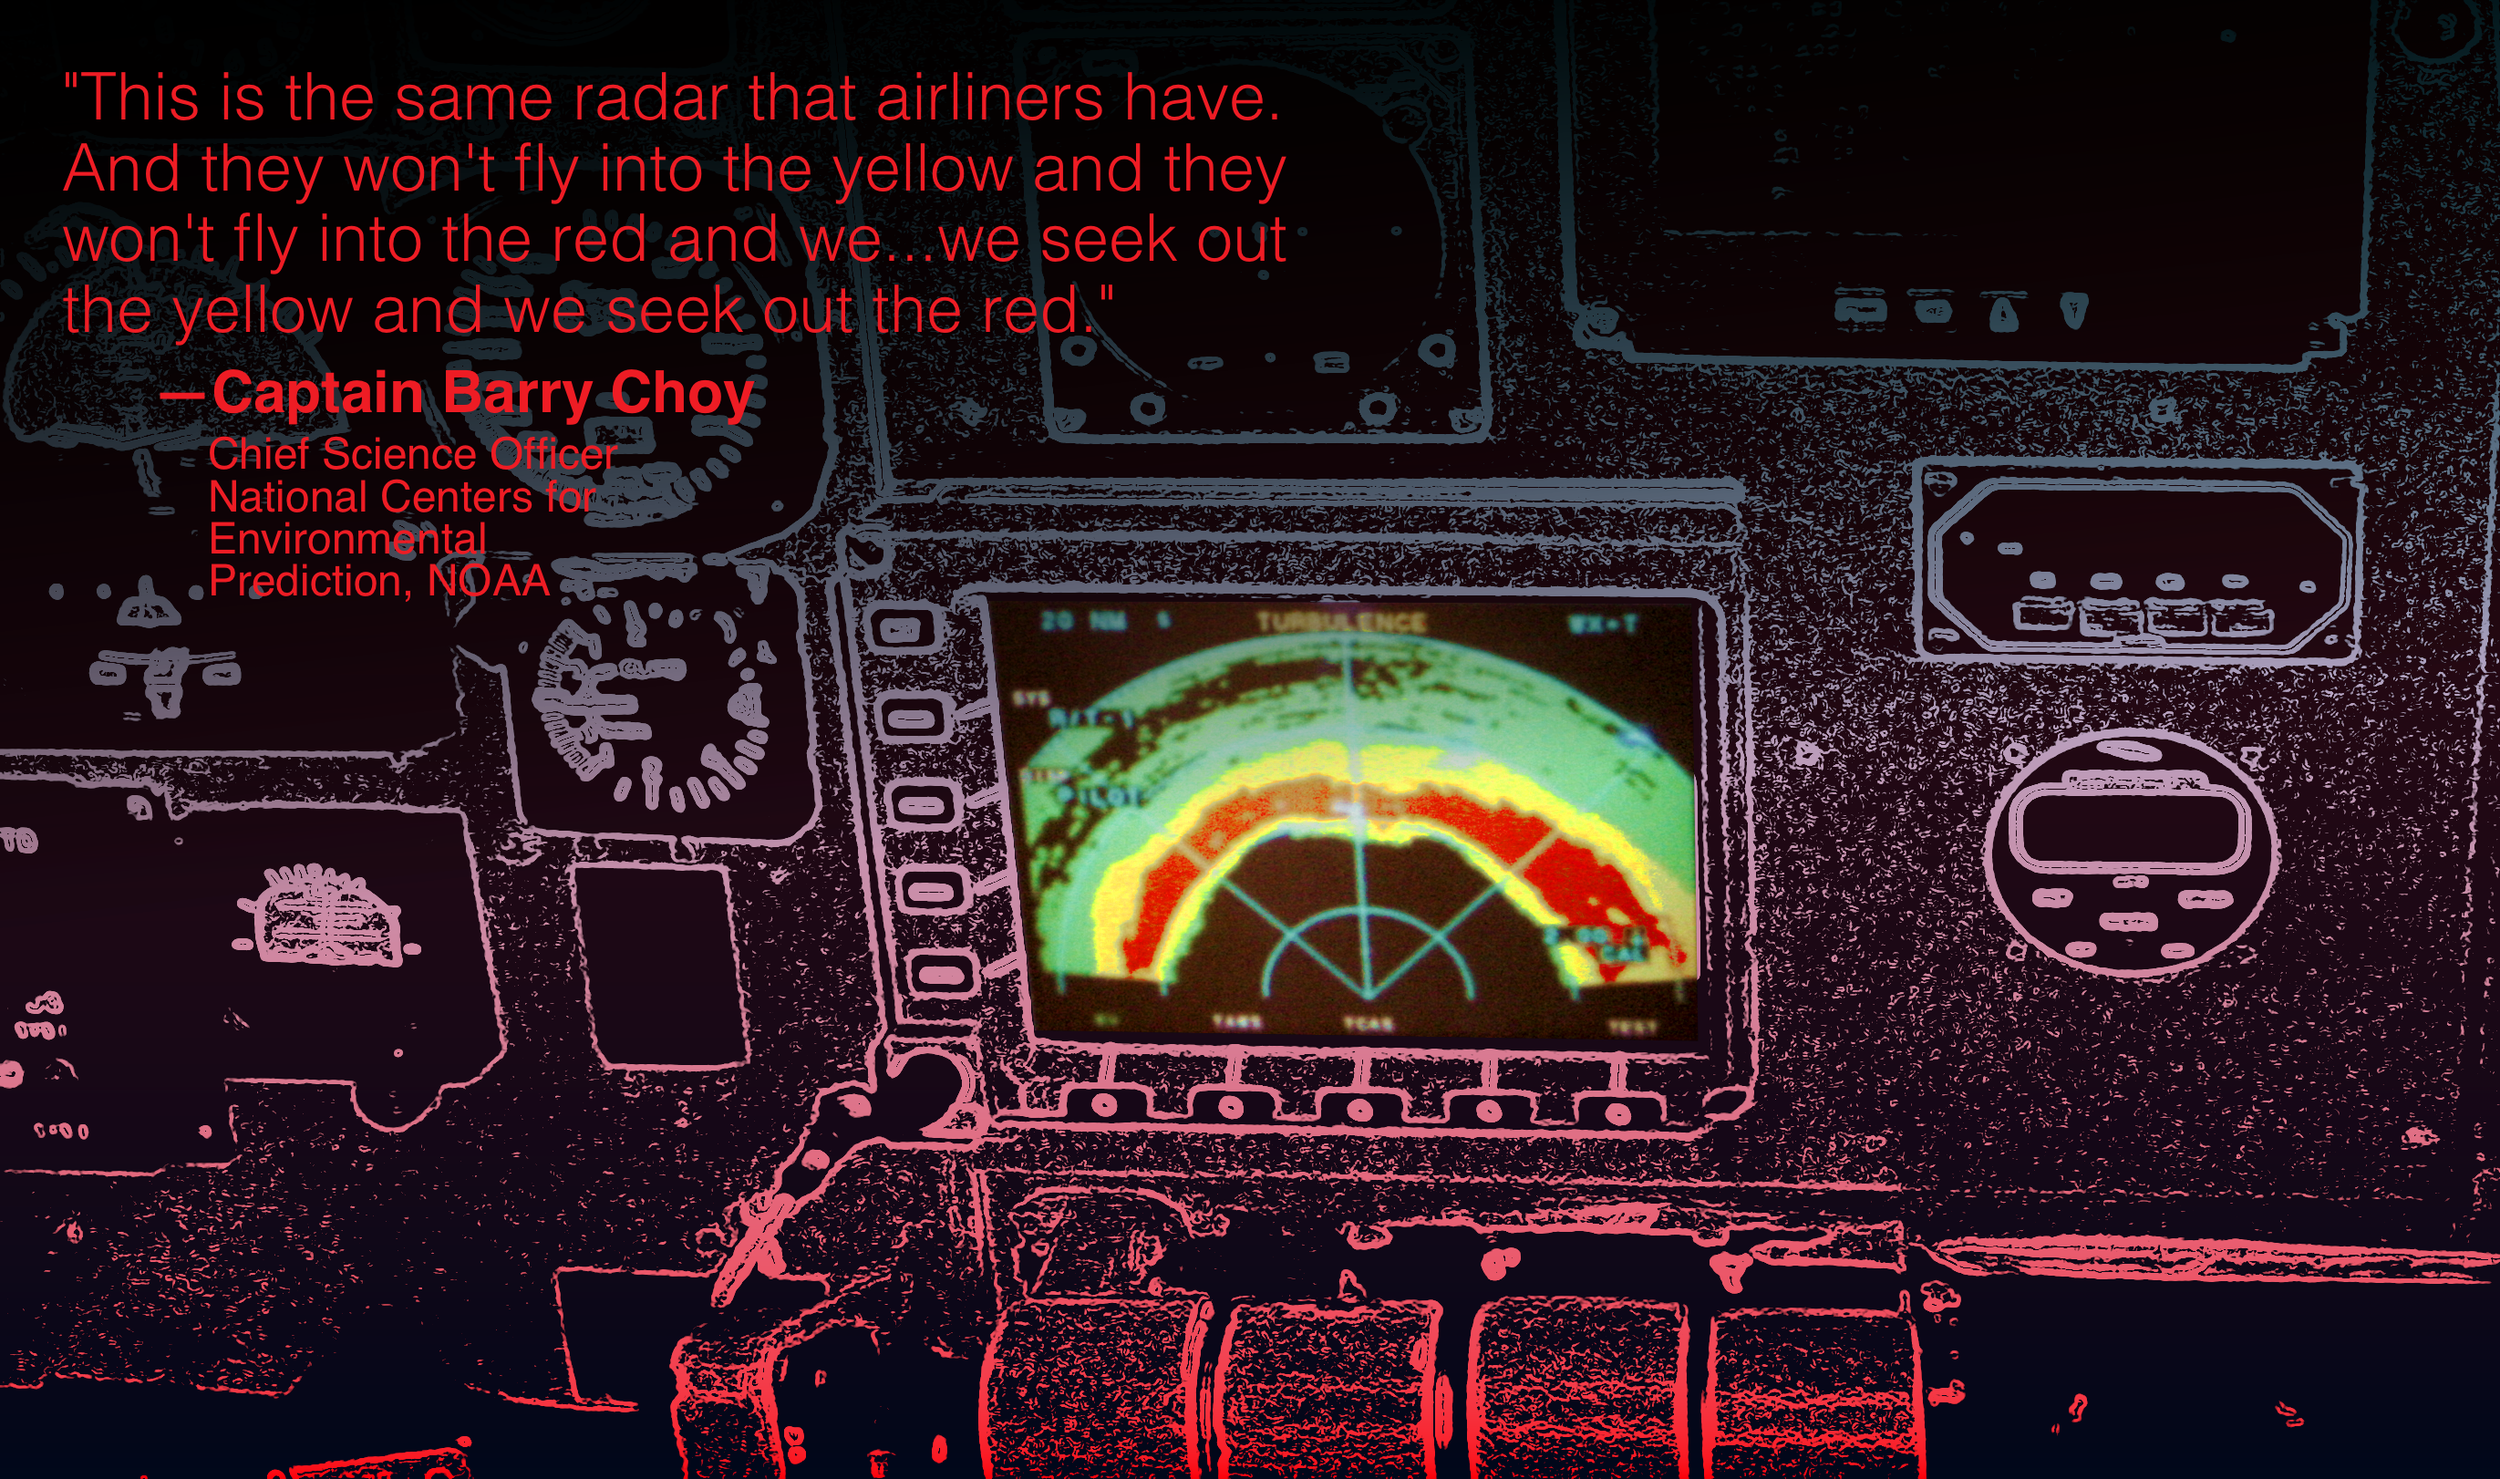 Radar Quote PNG.png